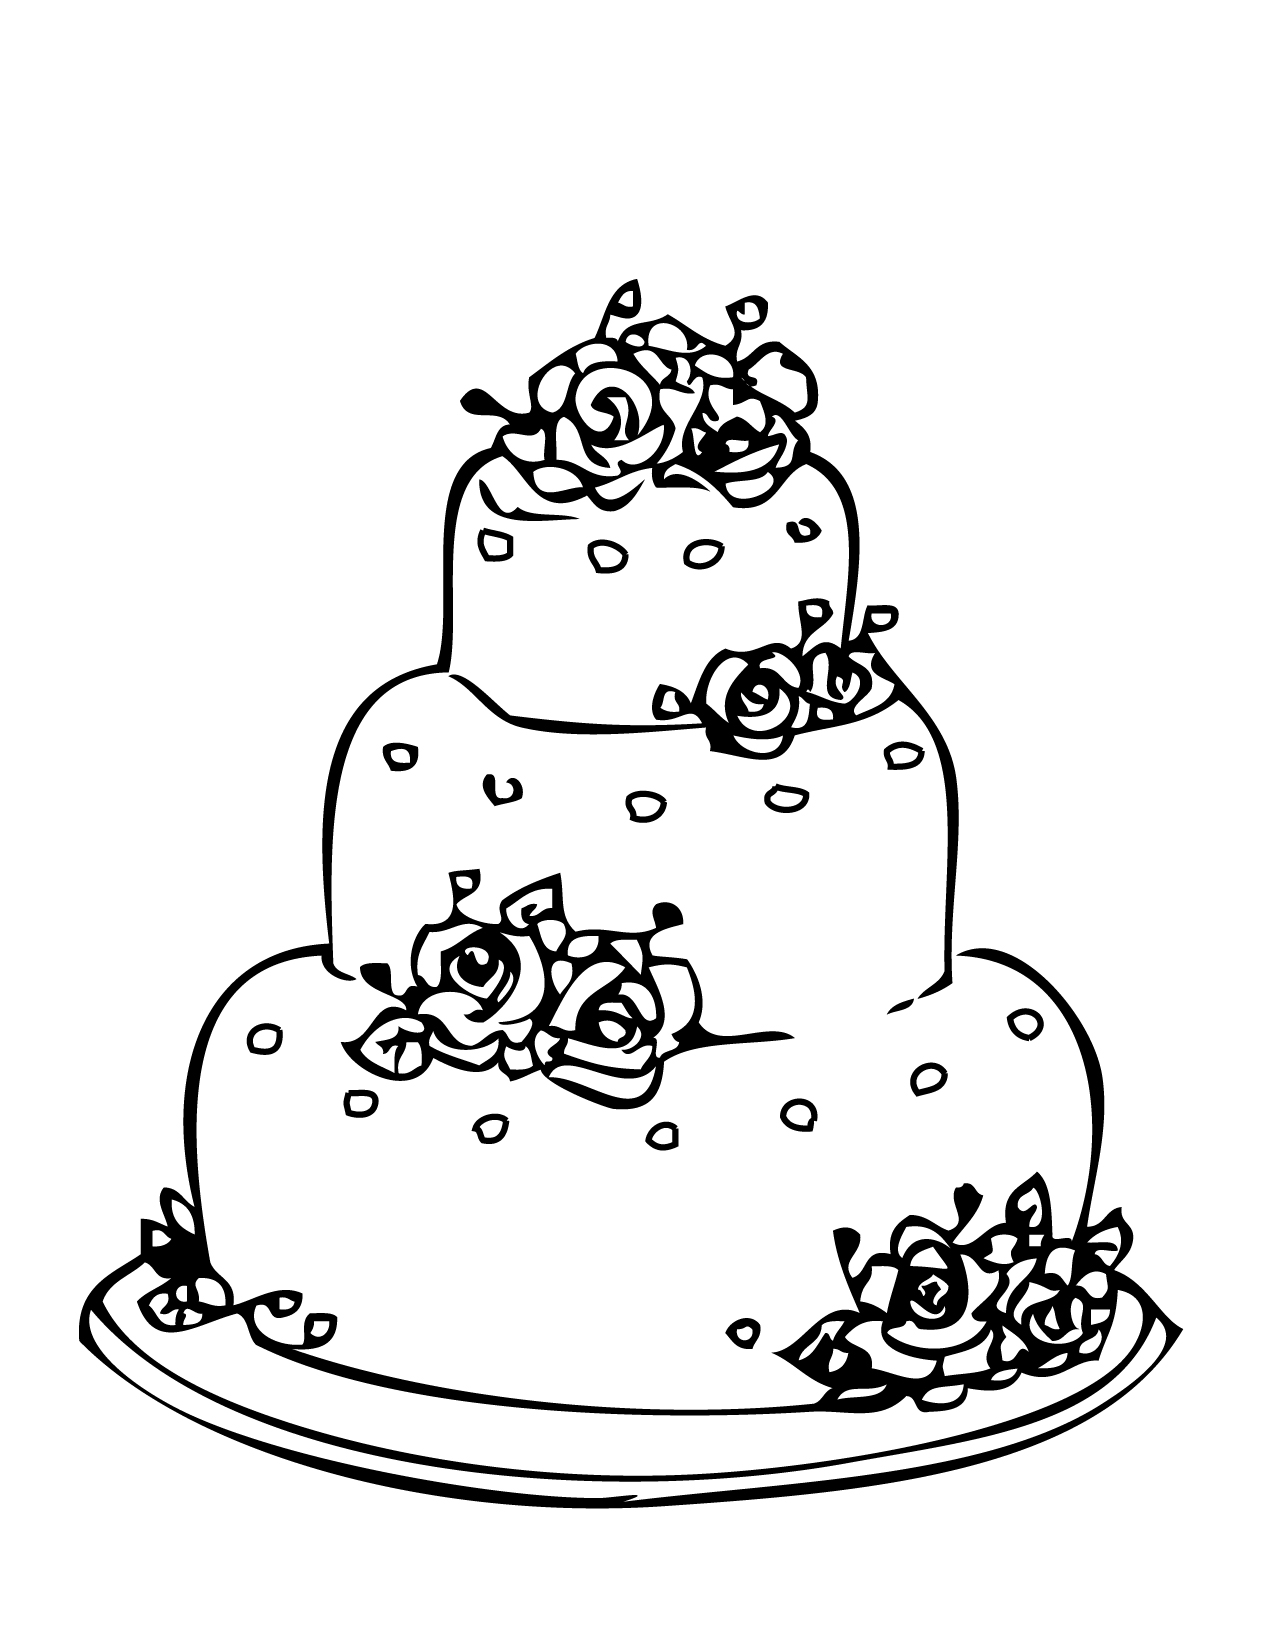 Wedding cake Coloring Page Handipoints